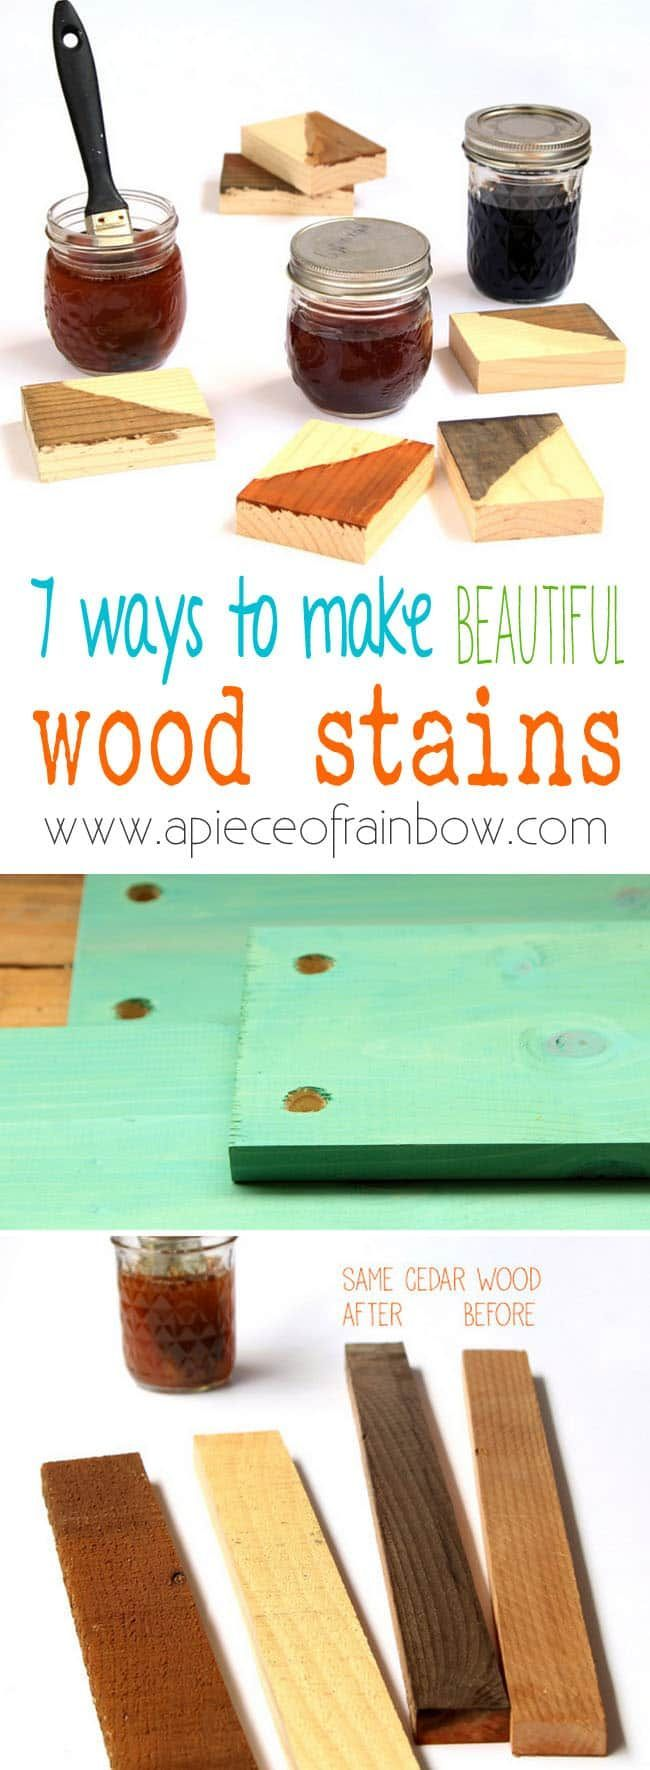 7 ways to make wood stain from natural household materials! These quick & easy DIY wood stains are super effective, long lasting, and low cost!